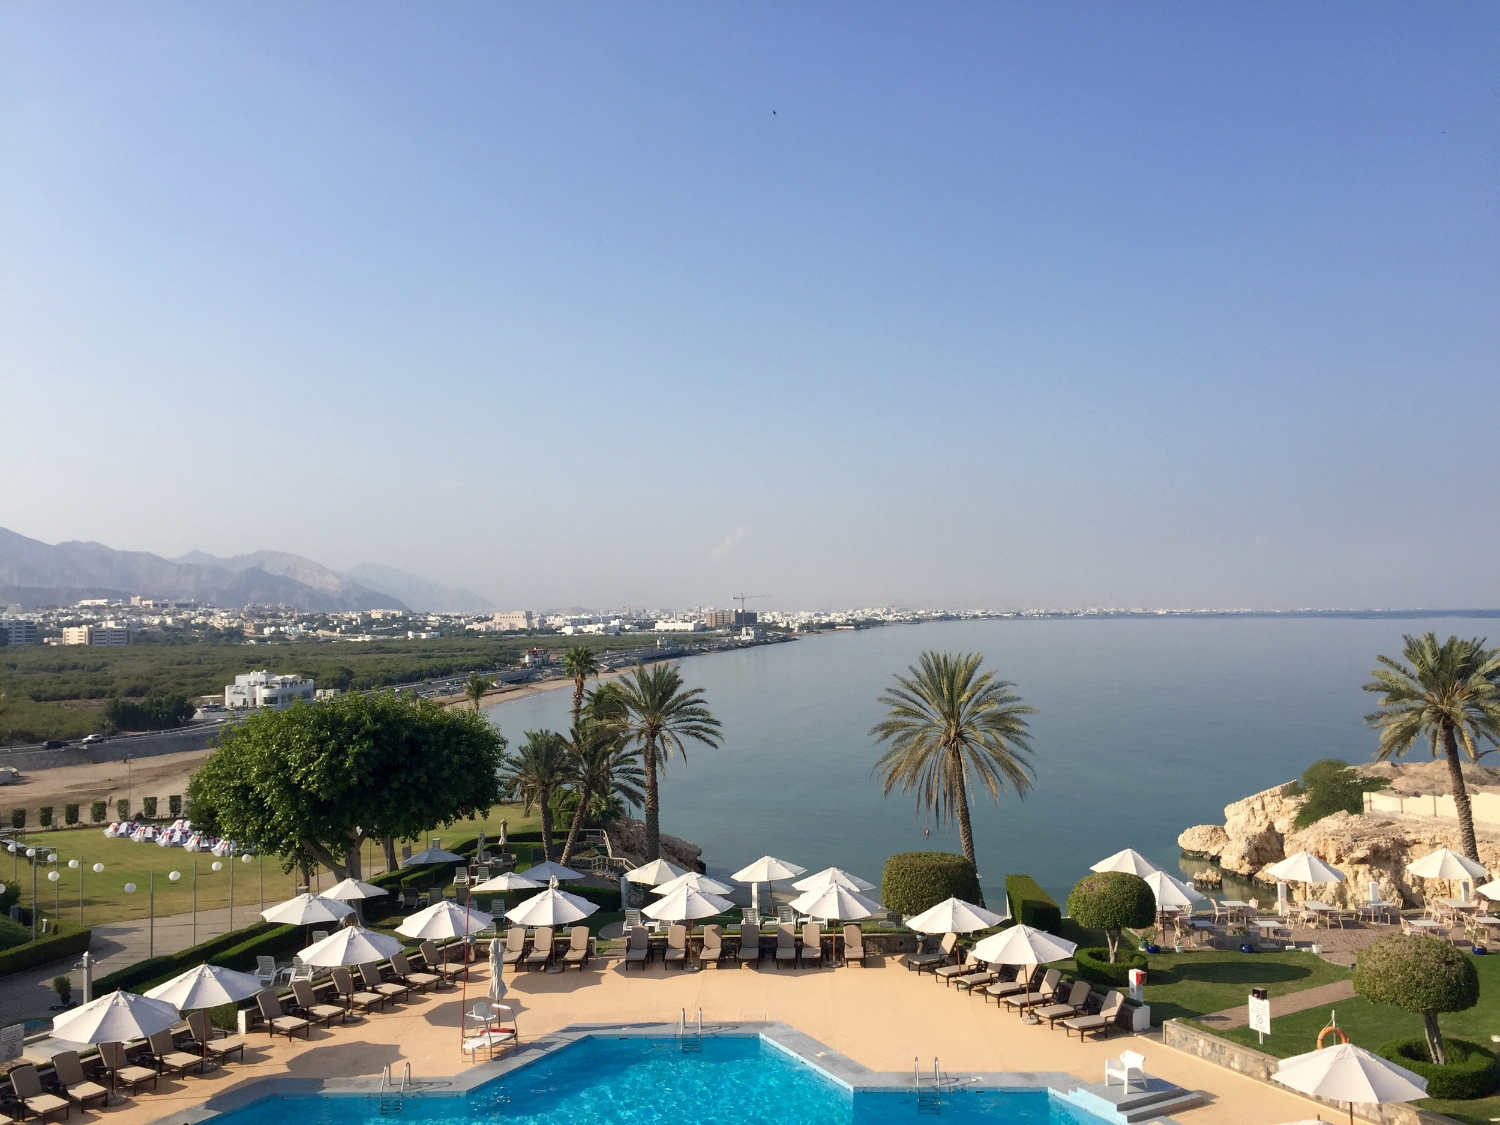 View from our balcony at the Crowne Plaza Muscat, Oman